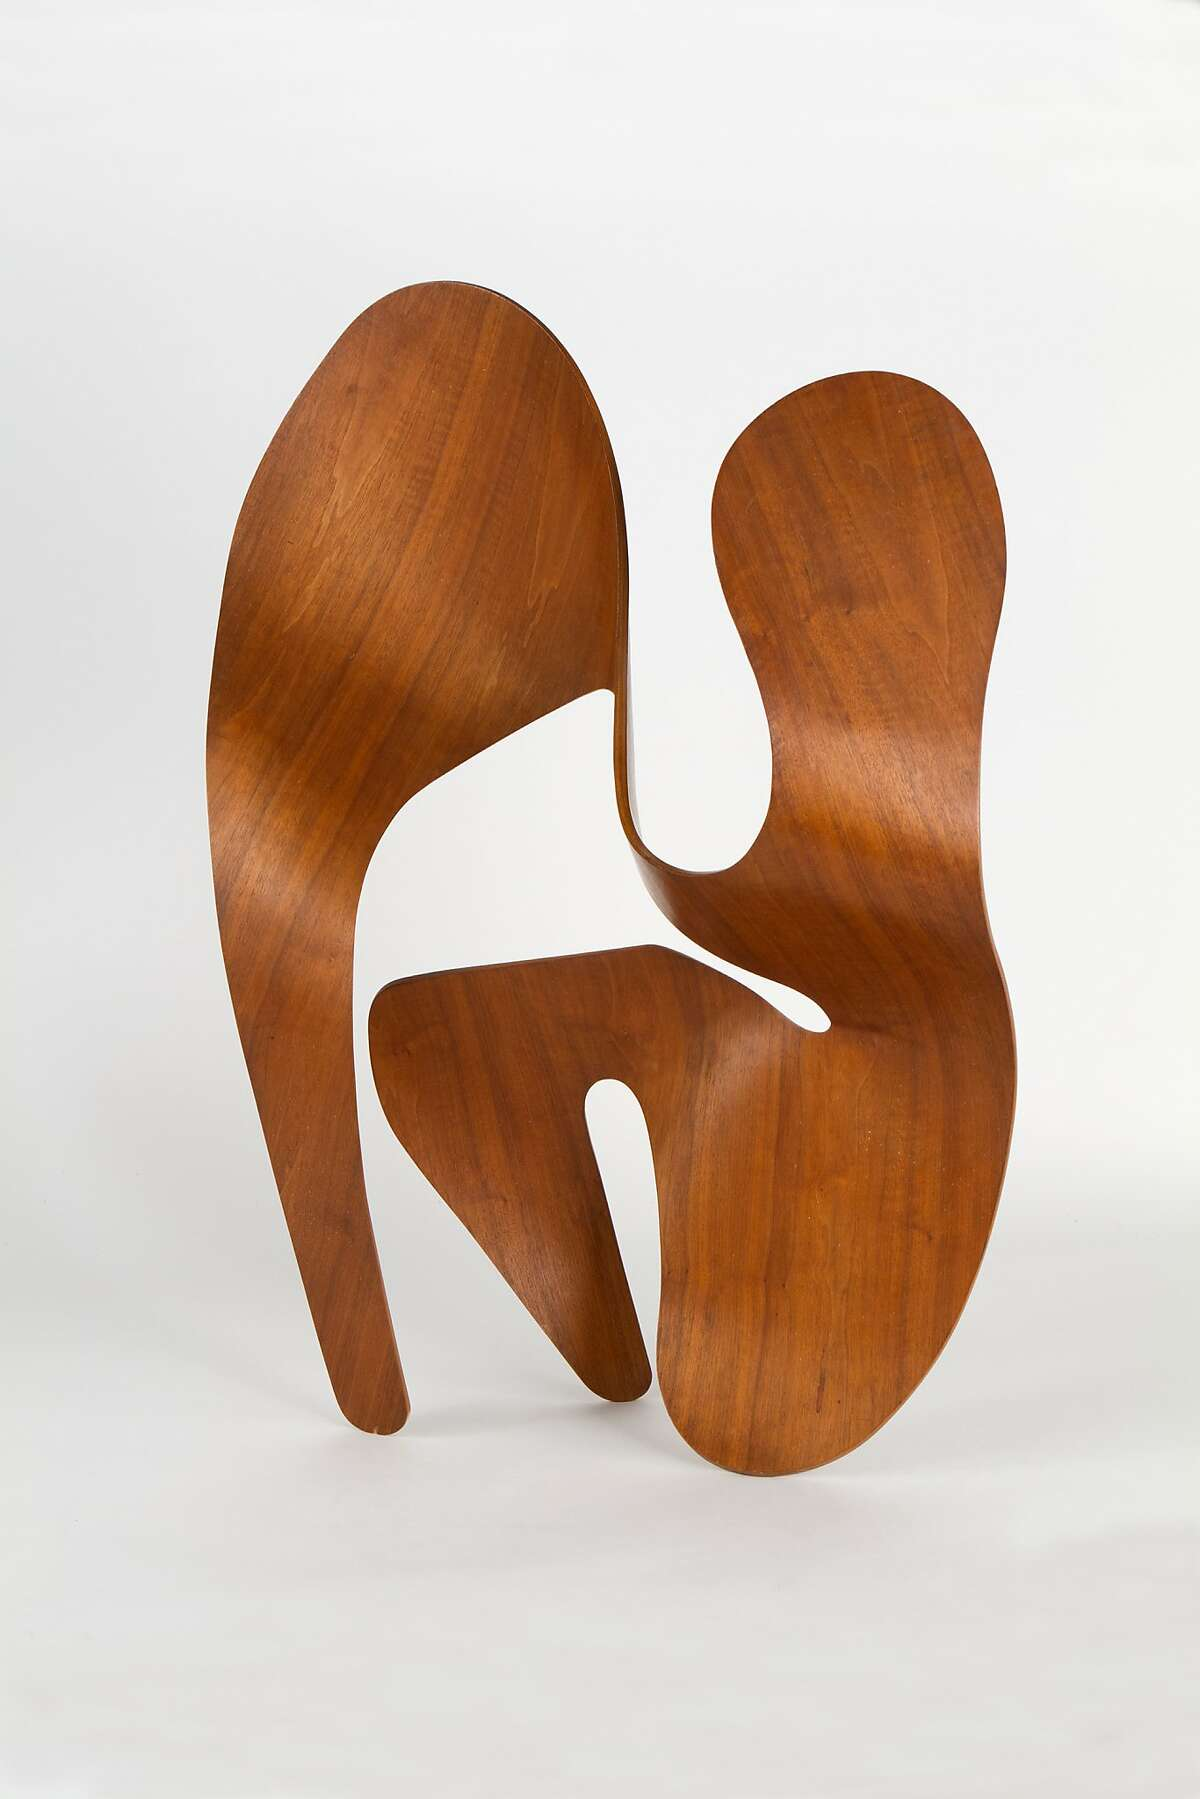 A plywood sculpture by Ray Eames.